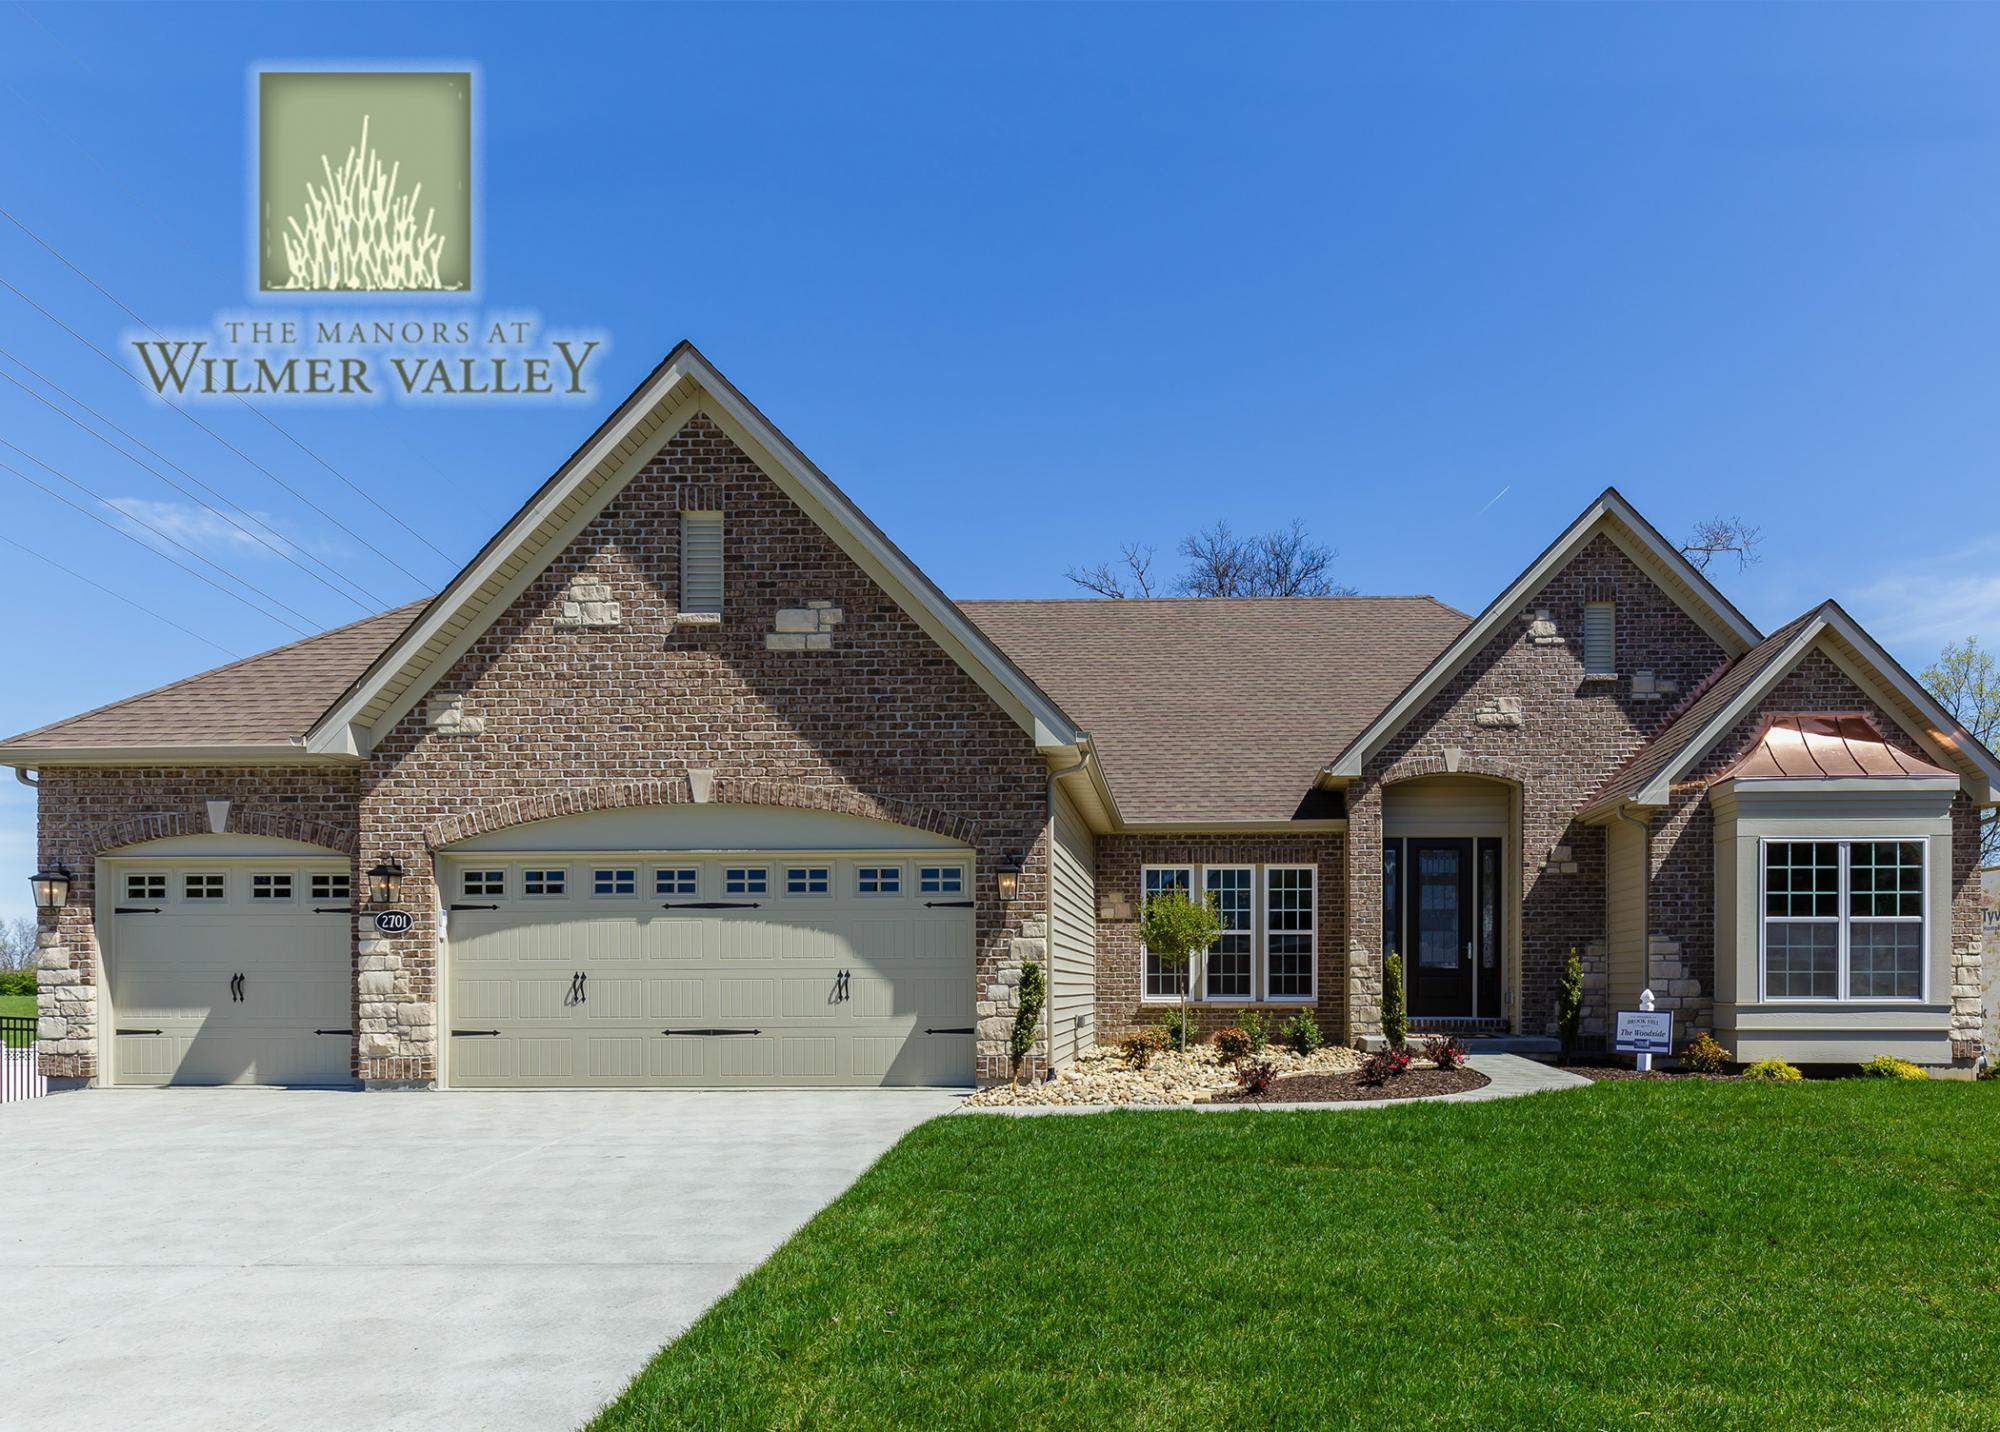 Single Family for Active at Hadleigh - Classic 106 Wilmer Valley Dr. Wentzville, Missouri 63385 United States